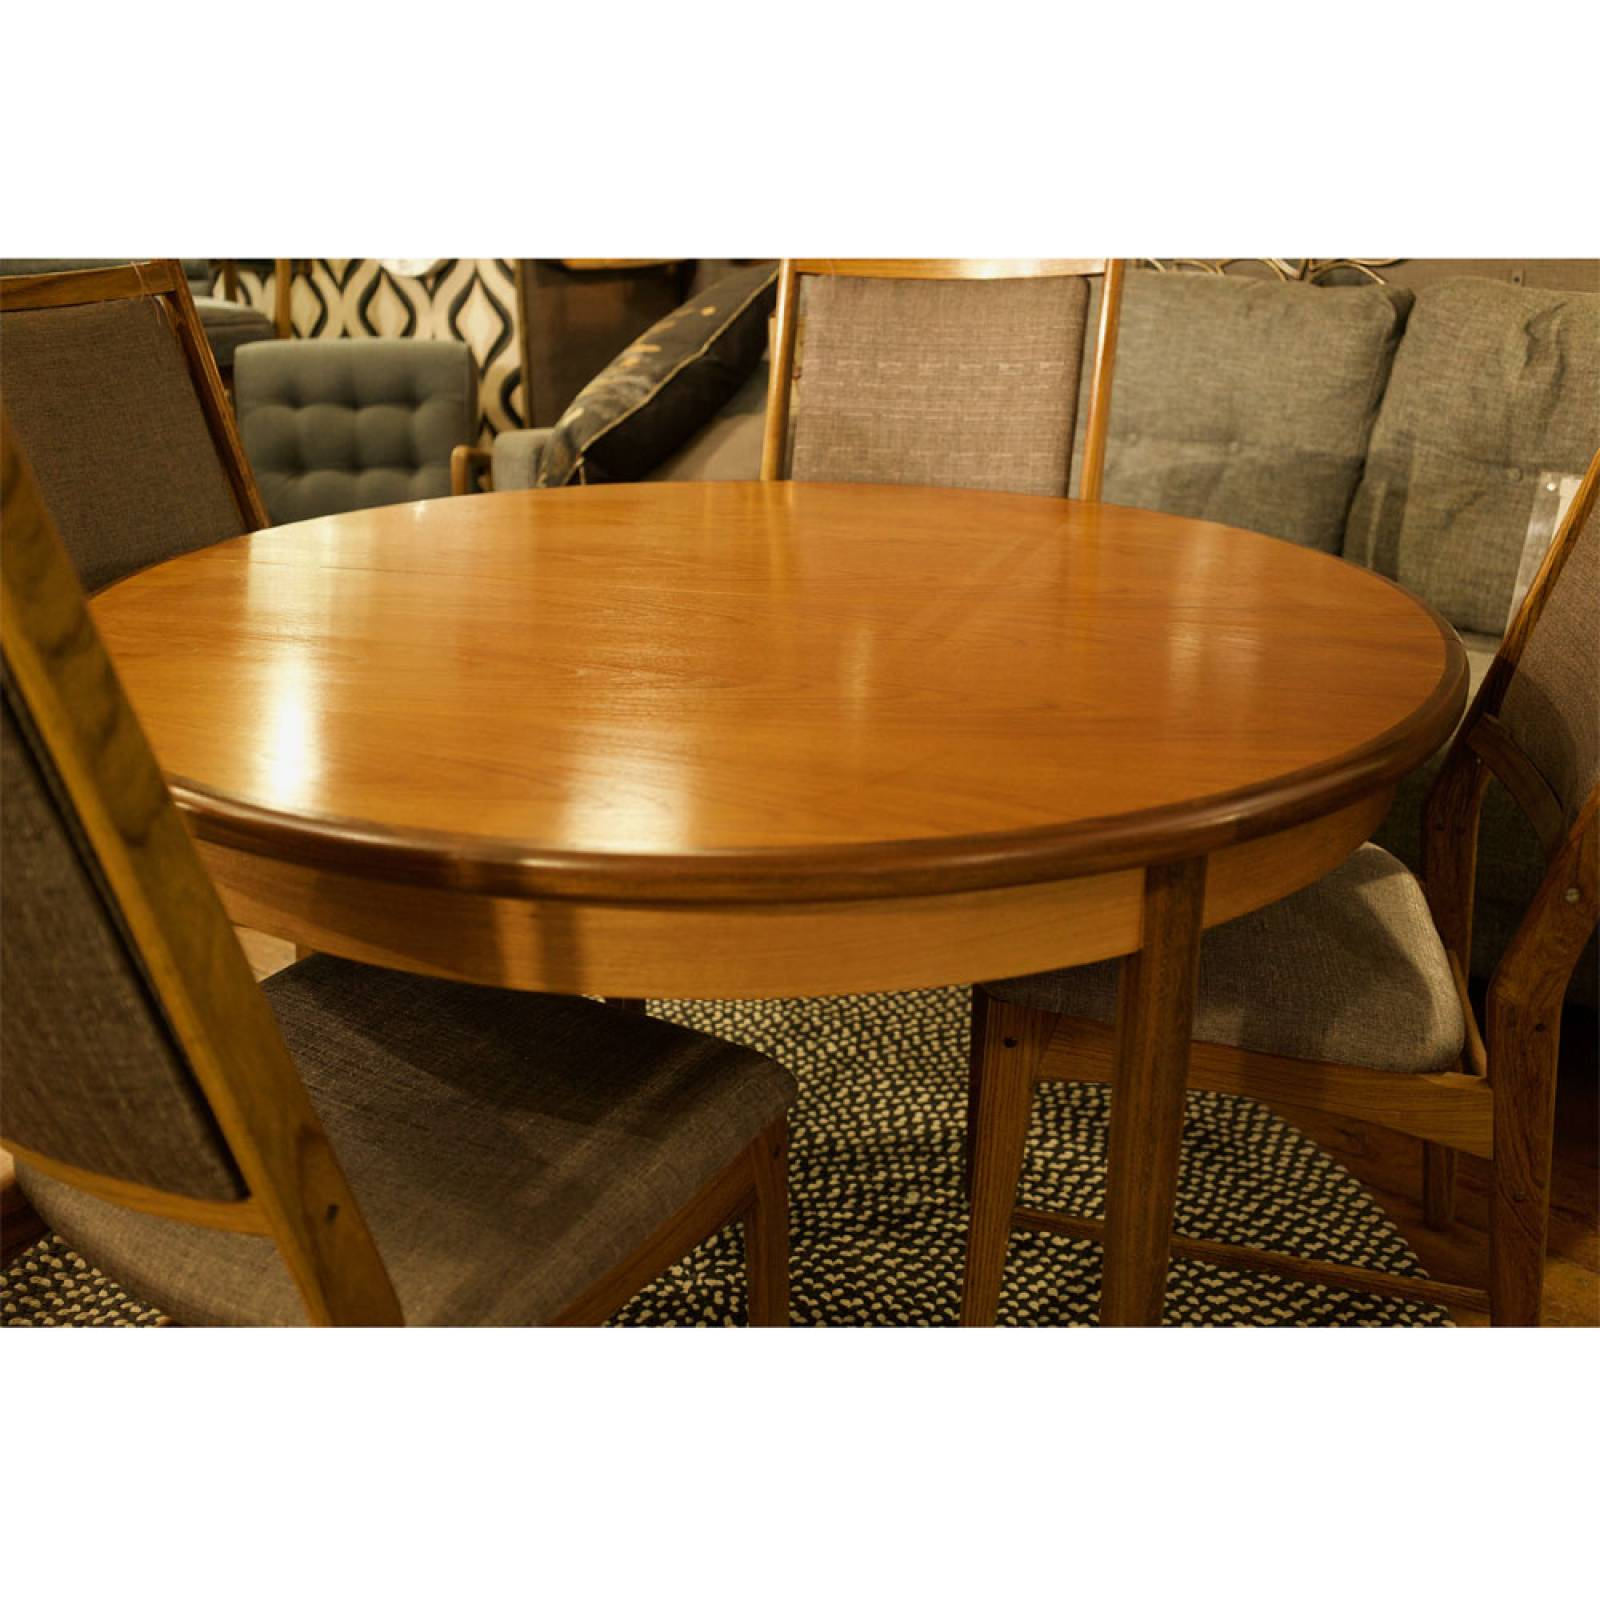 G Plan Fresco Circular Extending Dining Table